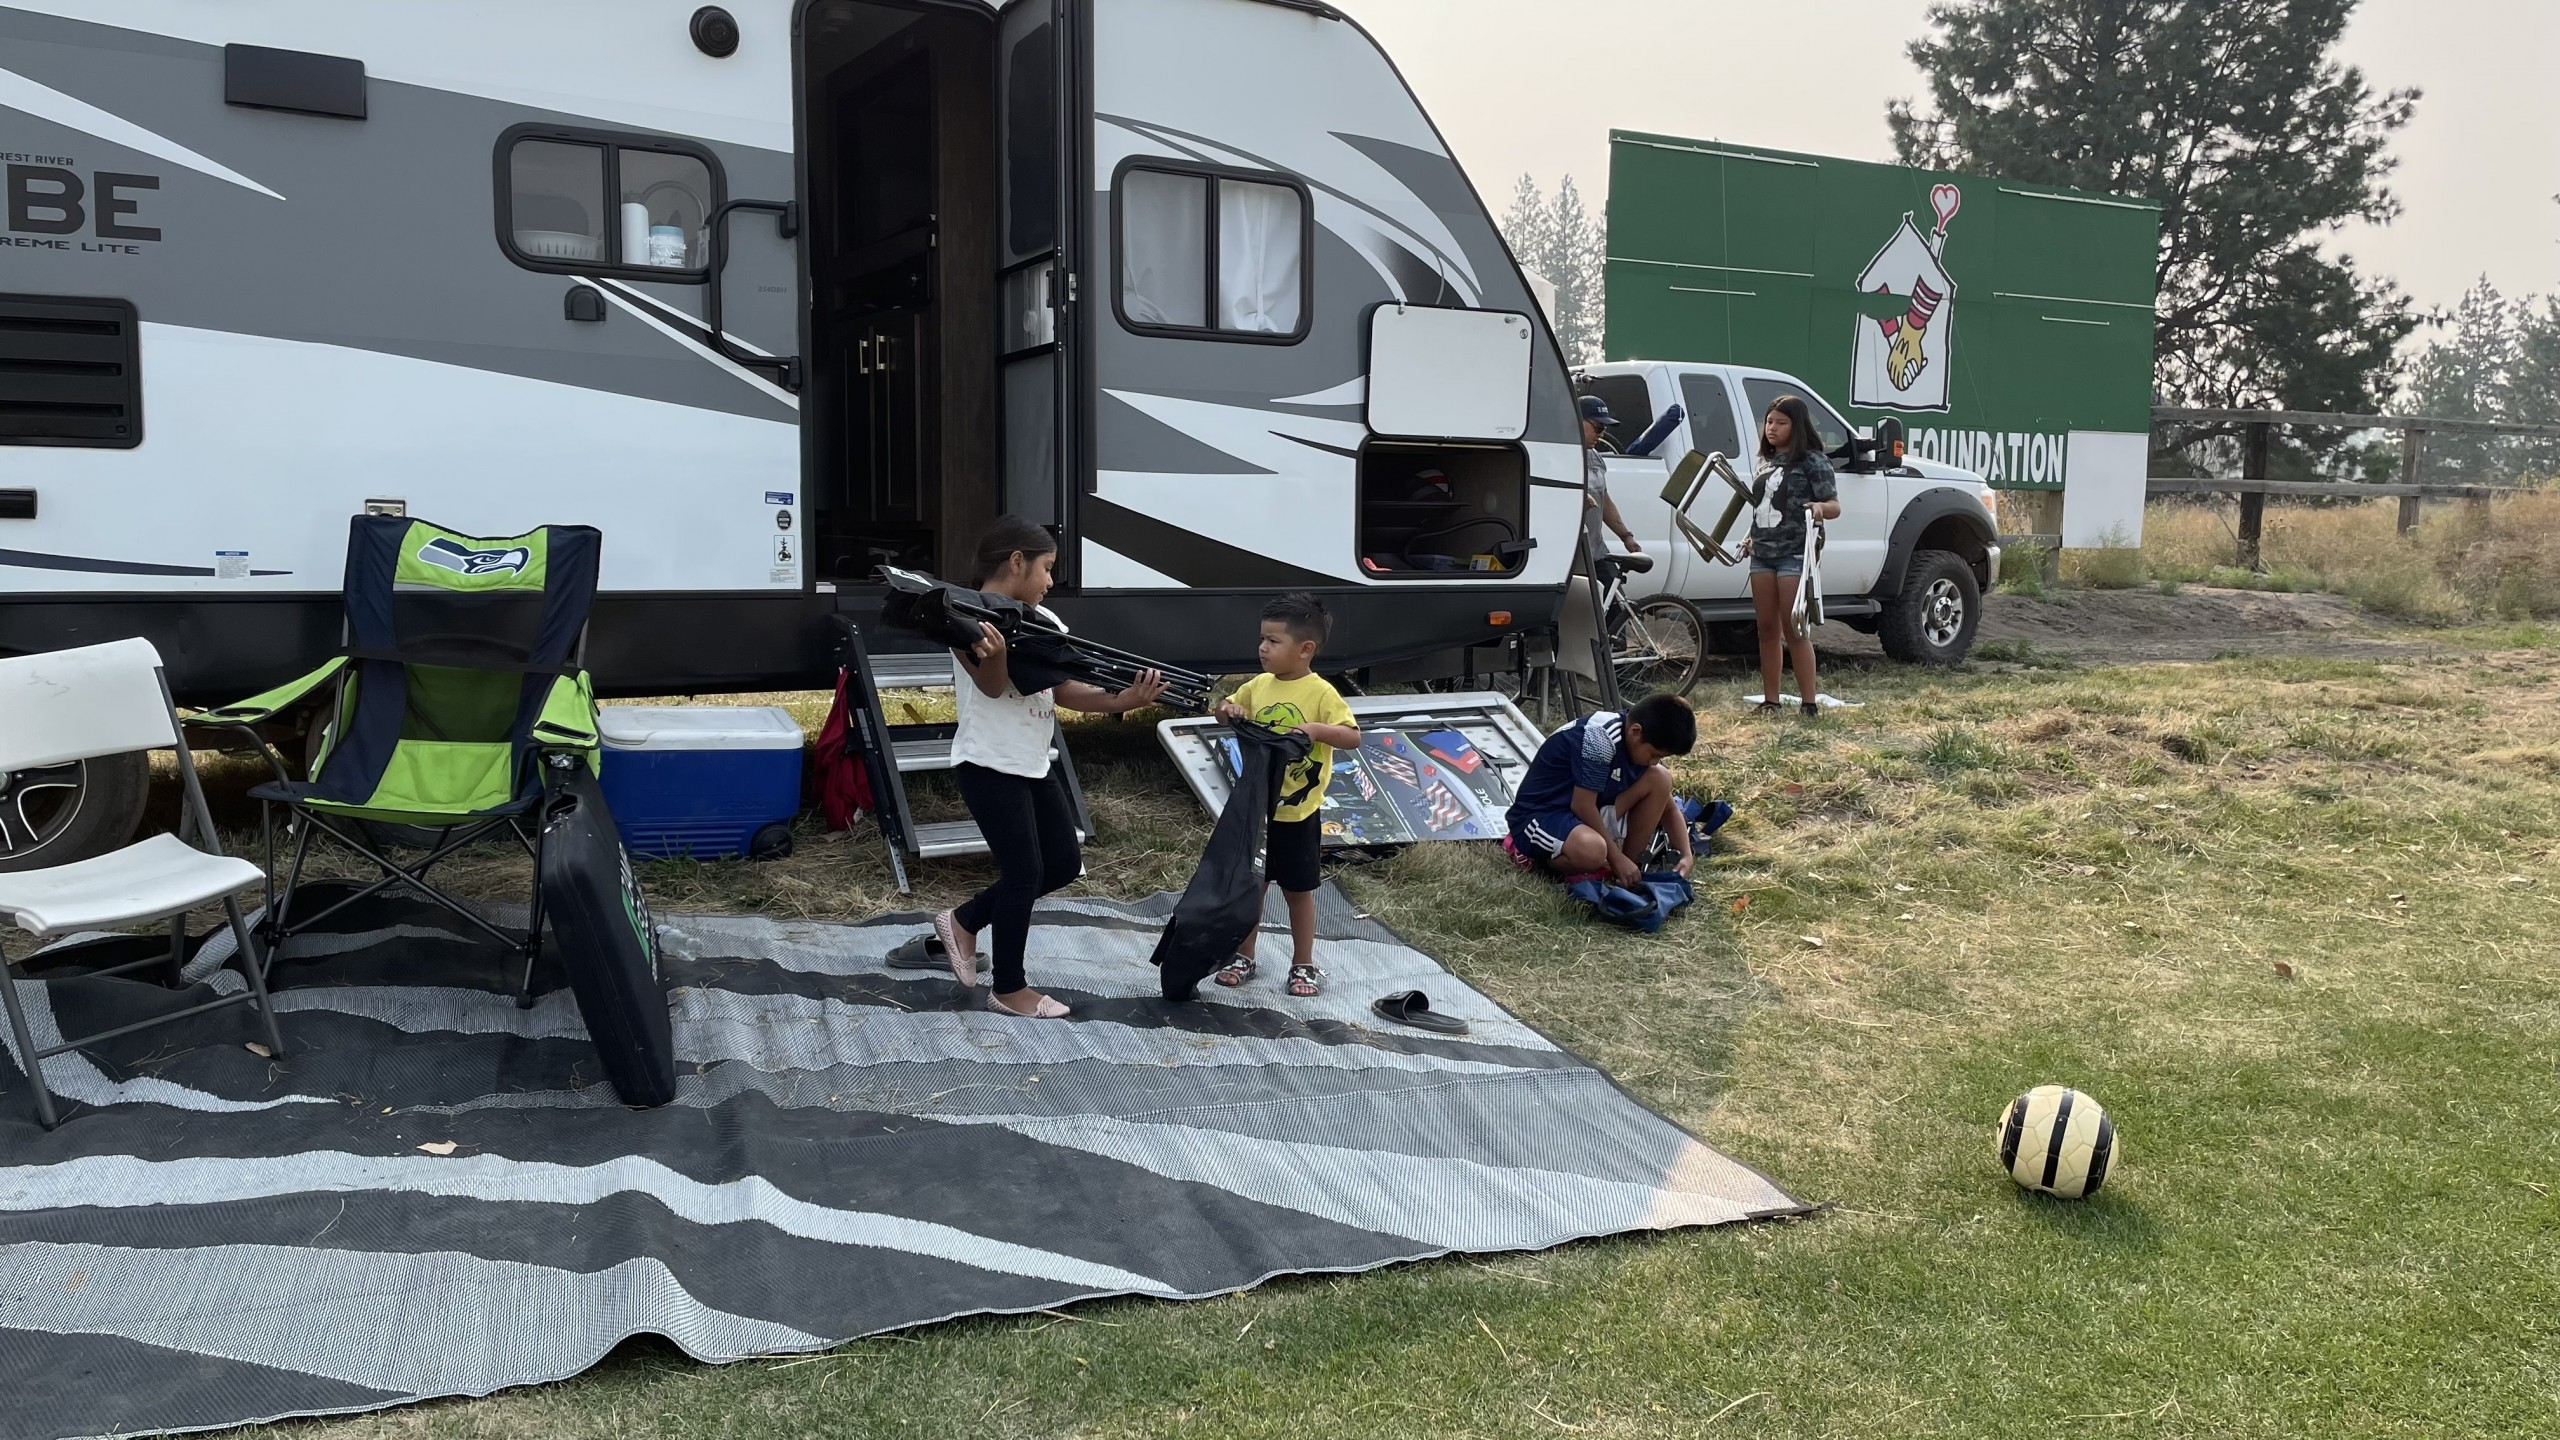 'It's sad:' Families leave without playing soccer tournament due to unhealthy air quality - KXLY